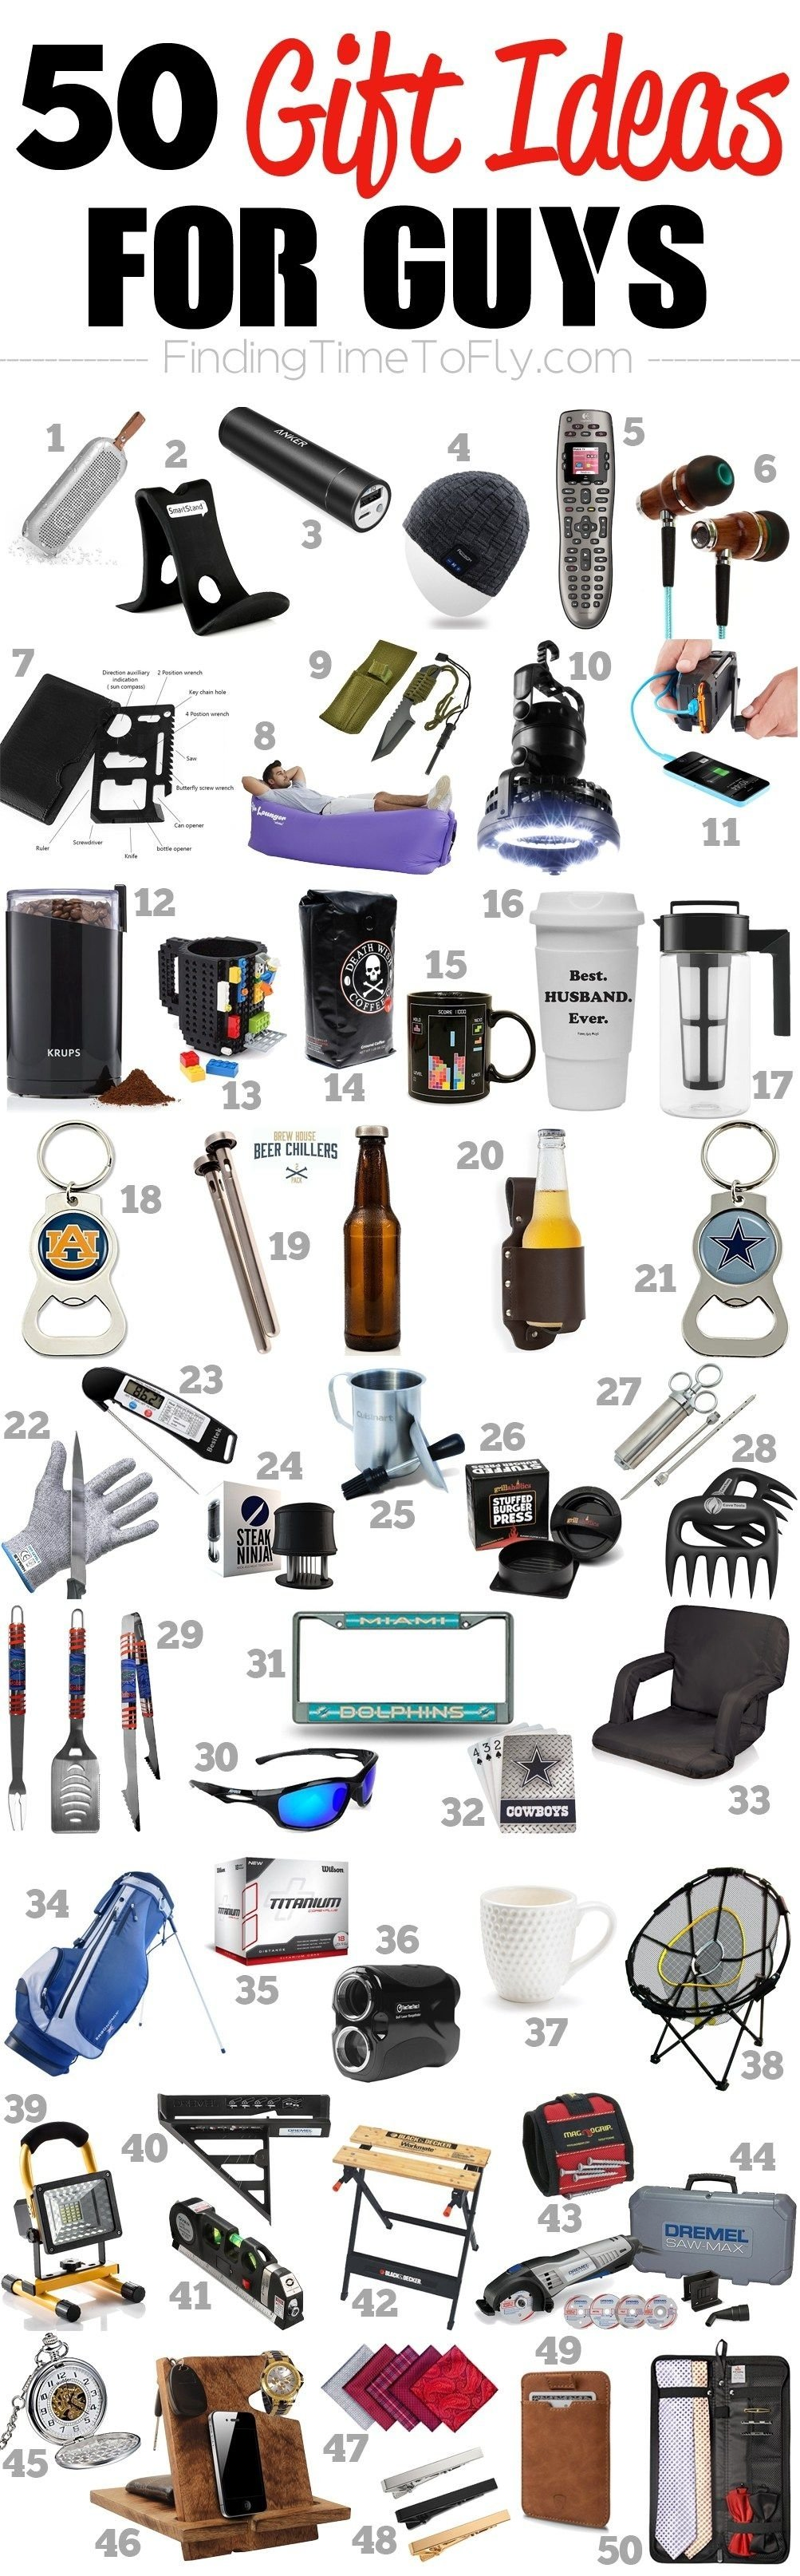 10 Pretty Christmas List Ideas For Guys 50 gifts for guys for every occasion outdoor gear christmas gifts 1 2020